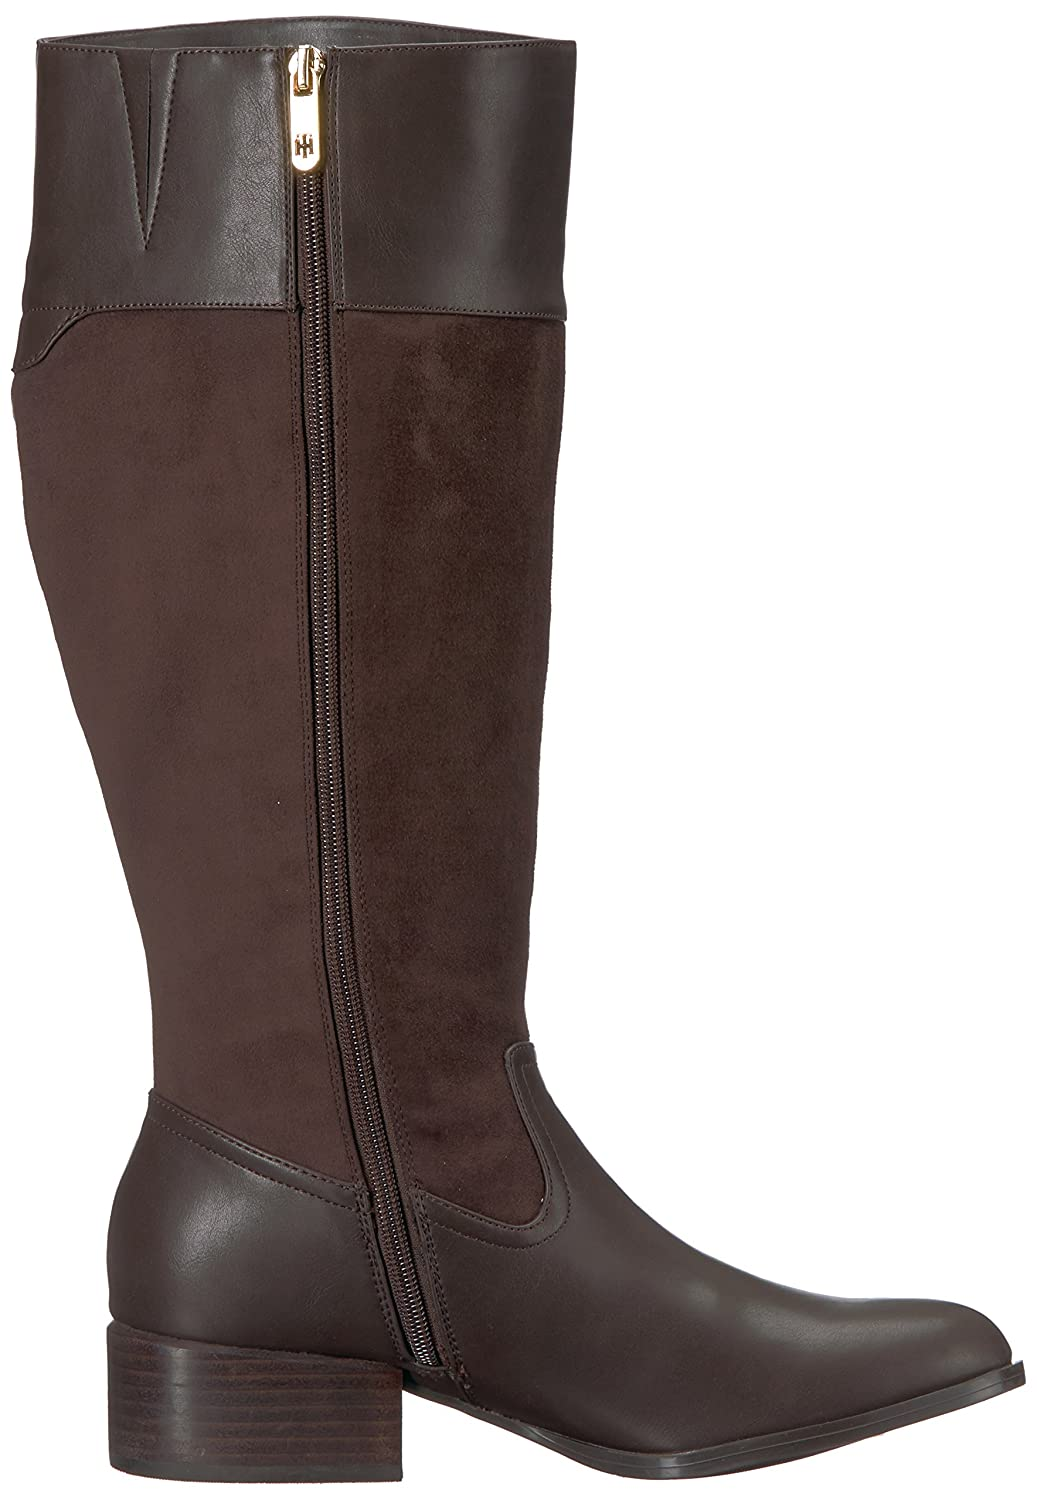 Tommy Hilfiger Women's Madeln-Wc Equestrian Boot B075RLSVKK 6 B(M) US|Brown/Brown